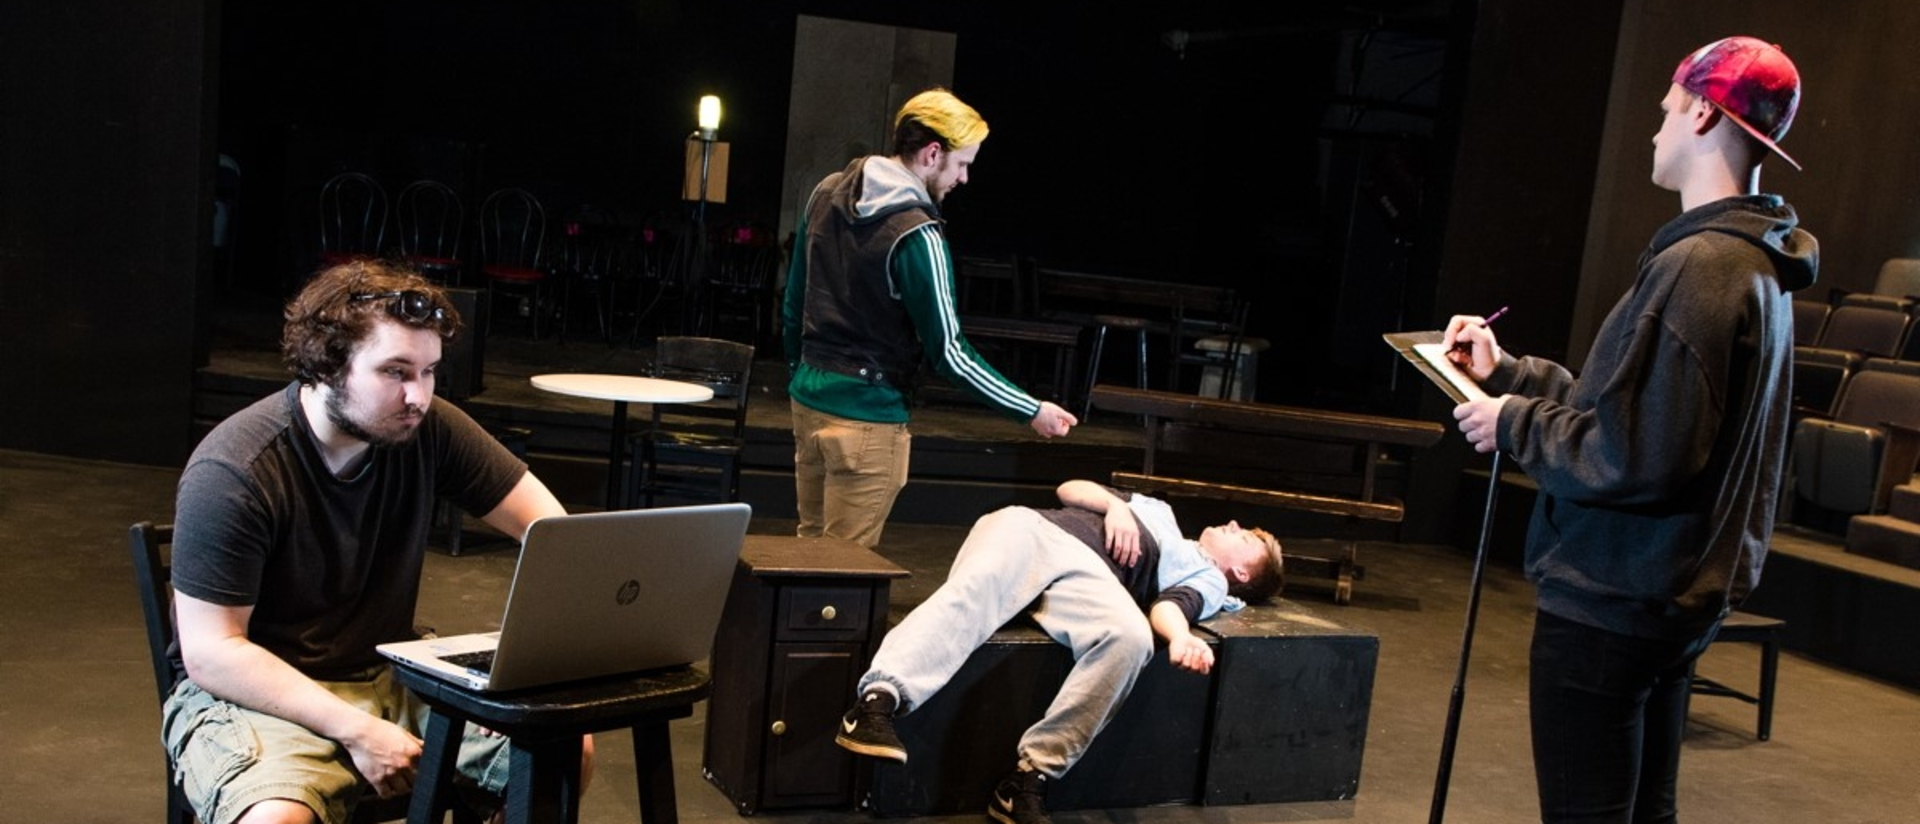 UWEC students rehearsing Invisible Truth performance.